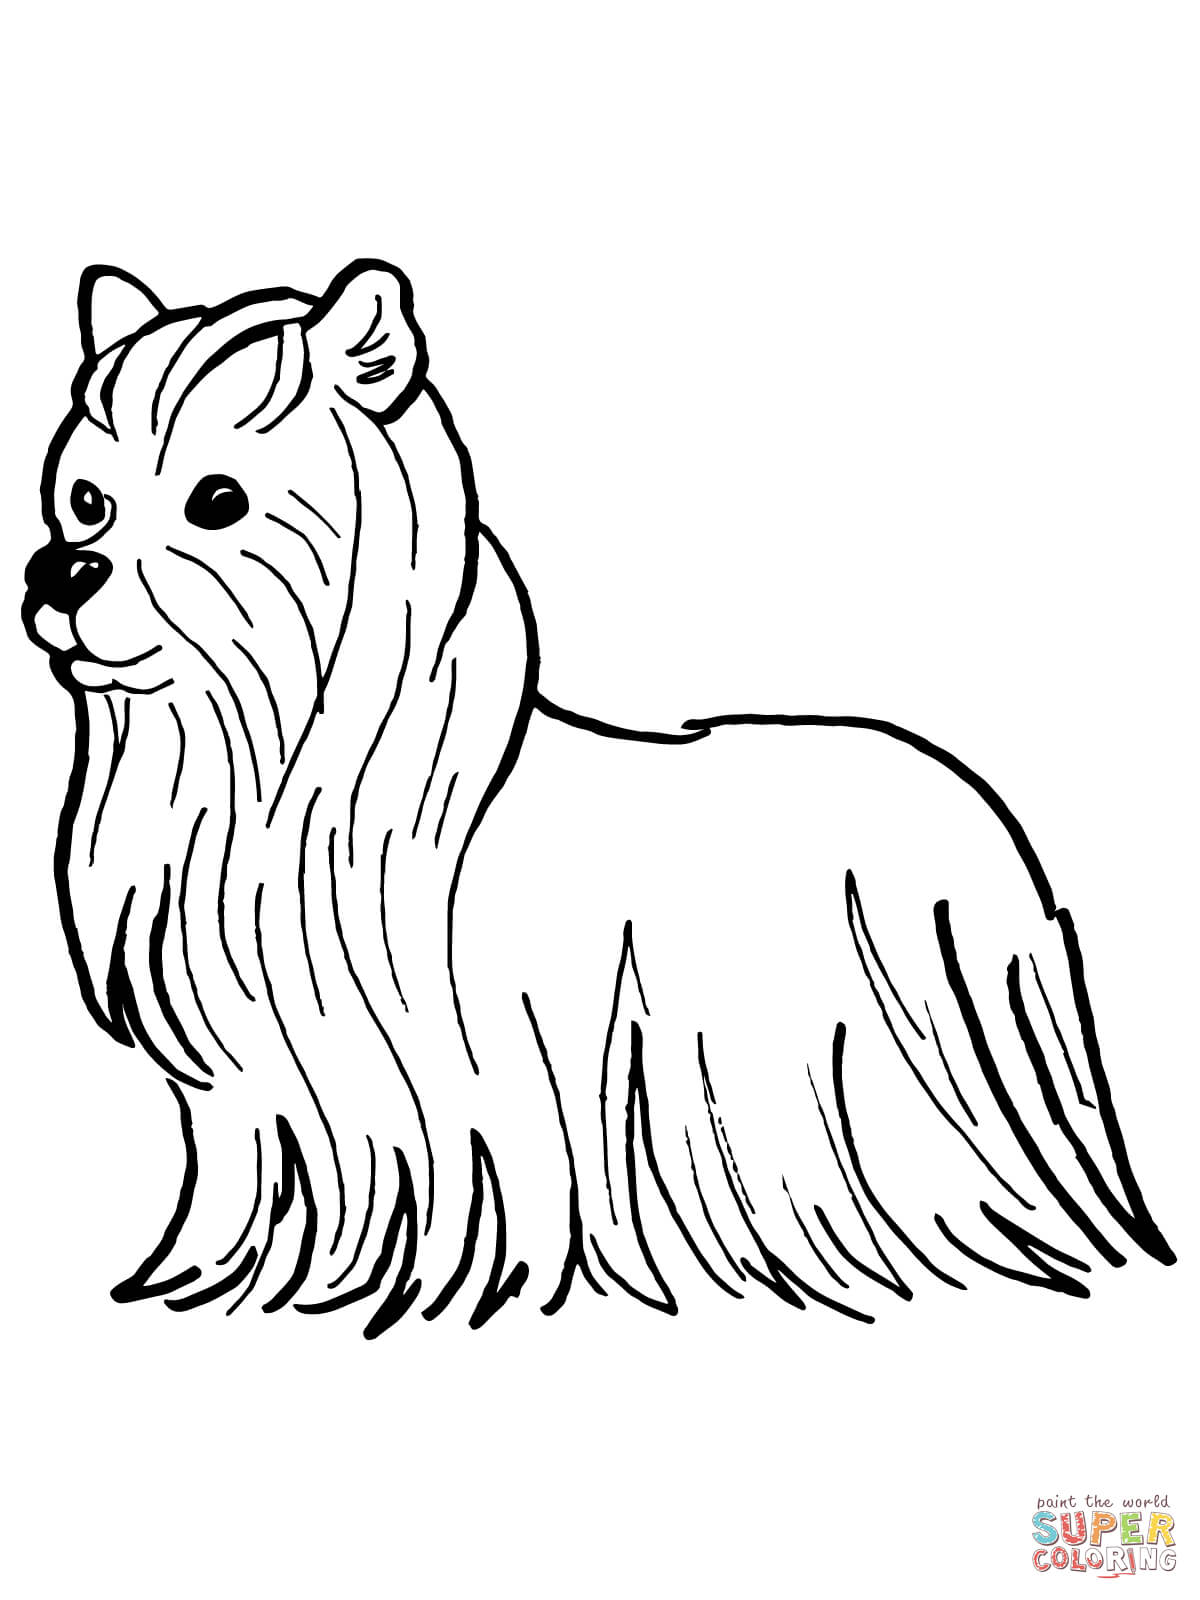 Yorkie Coloring Pages Free Coloring Pages Download | Xsibe yorkie ...